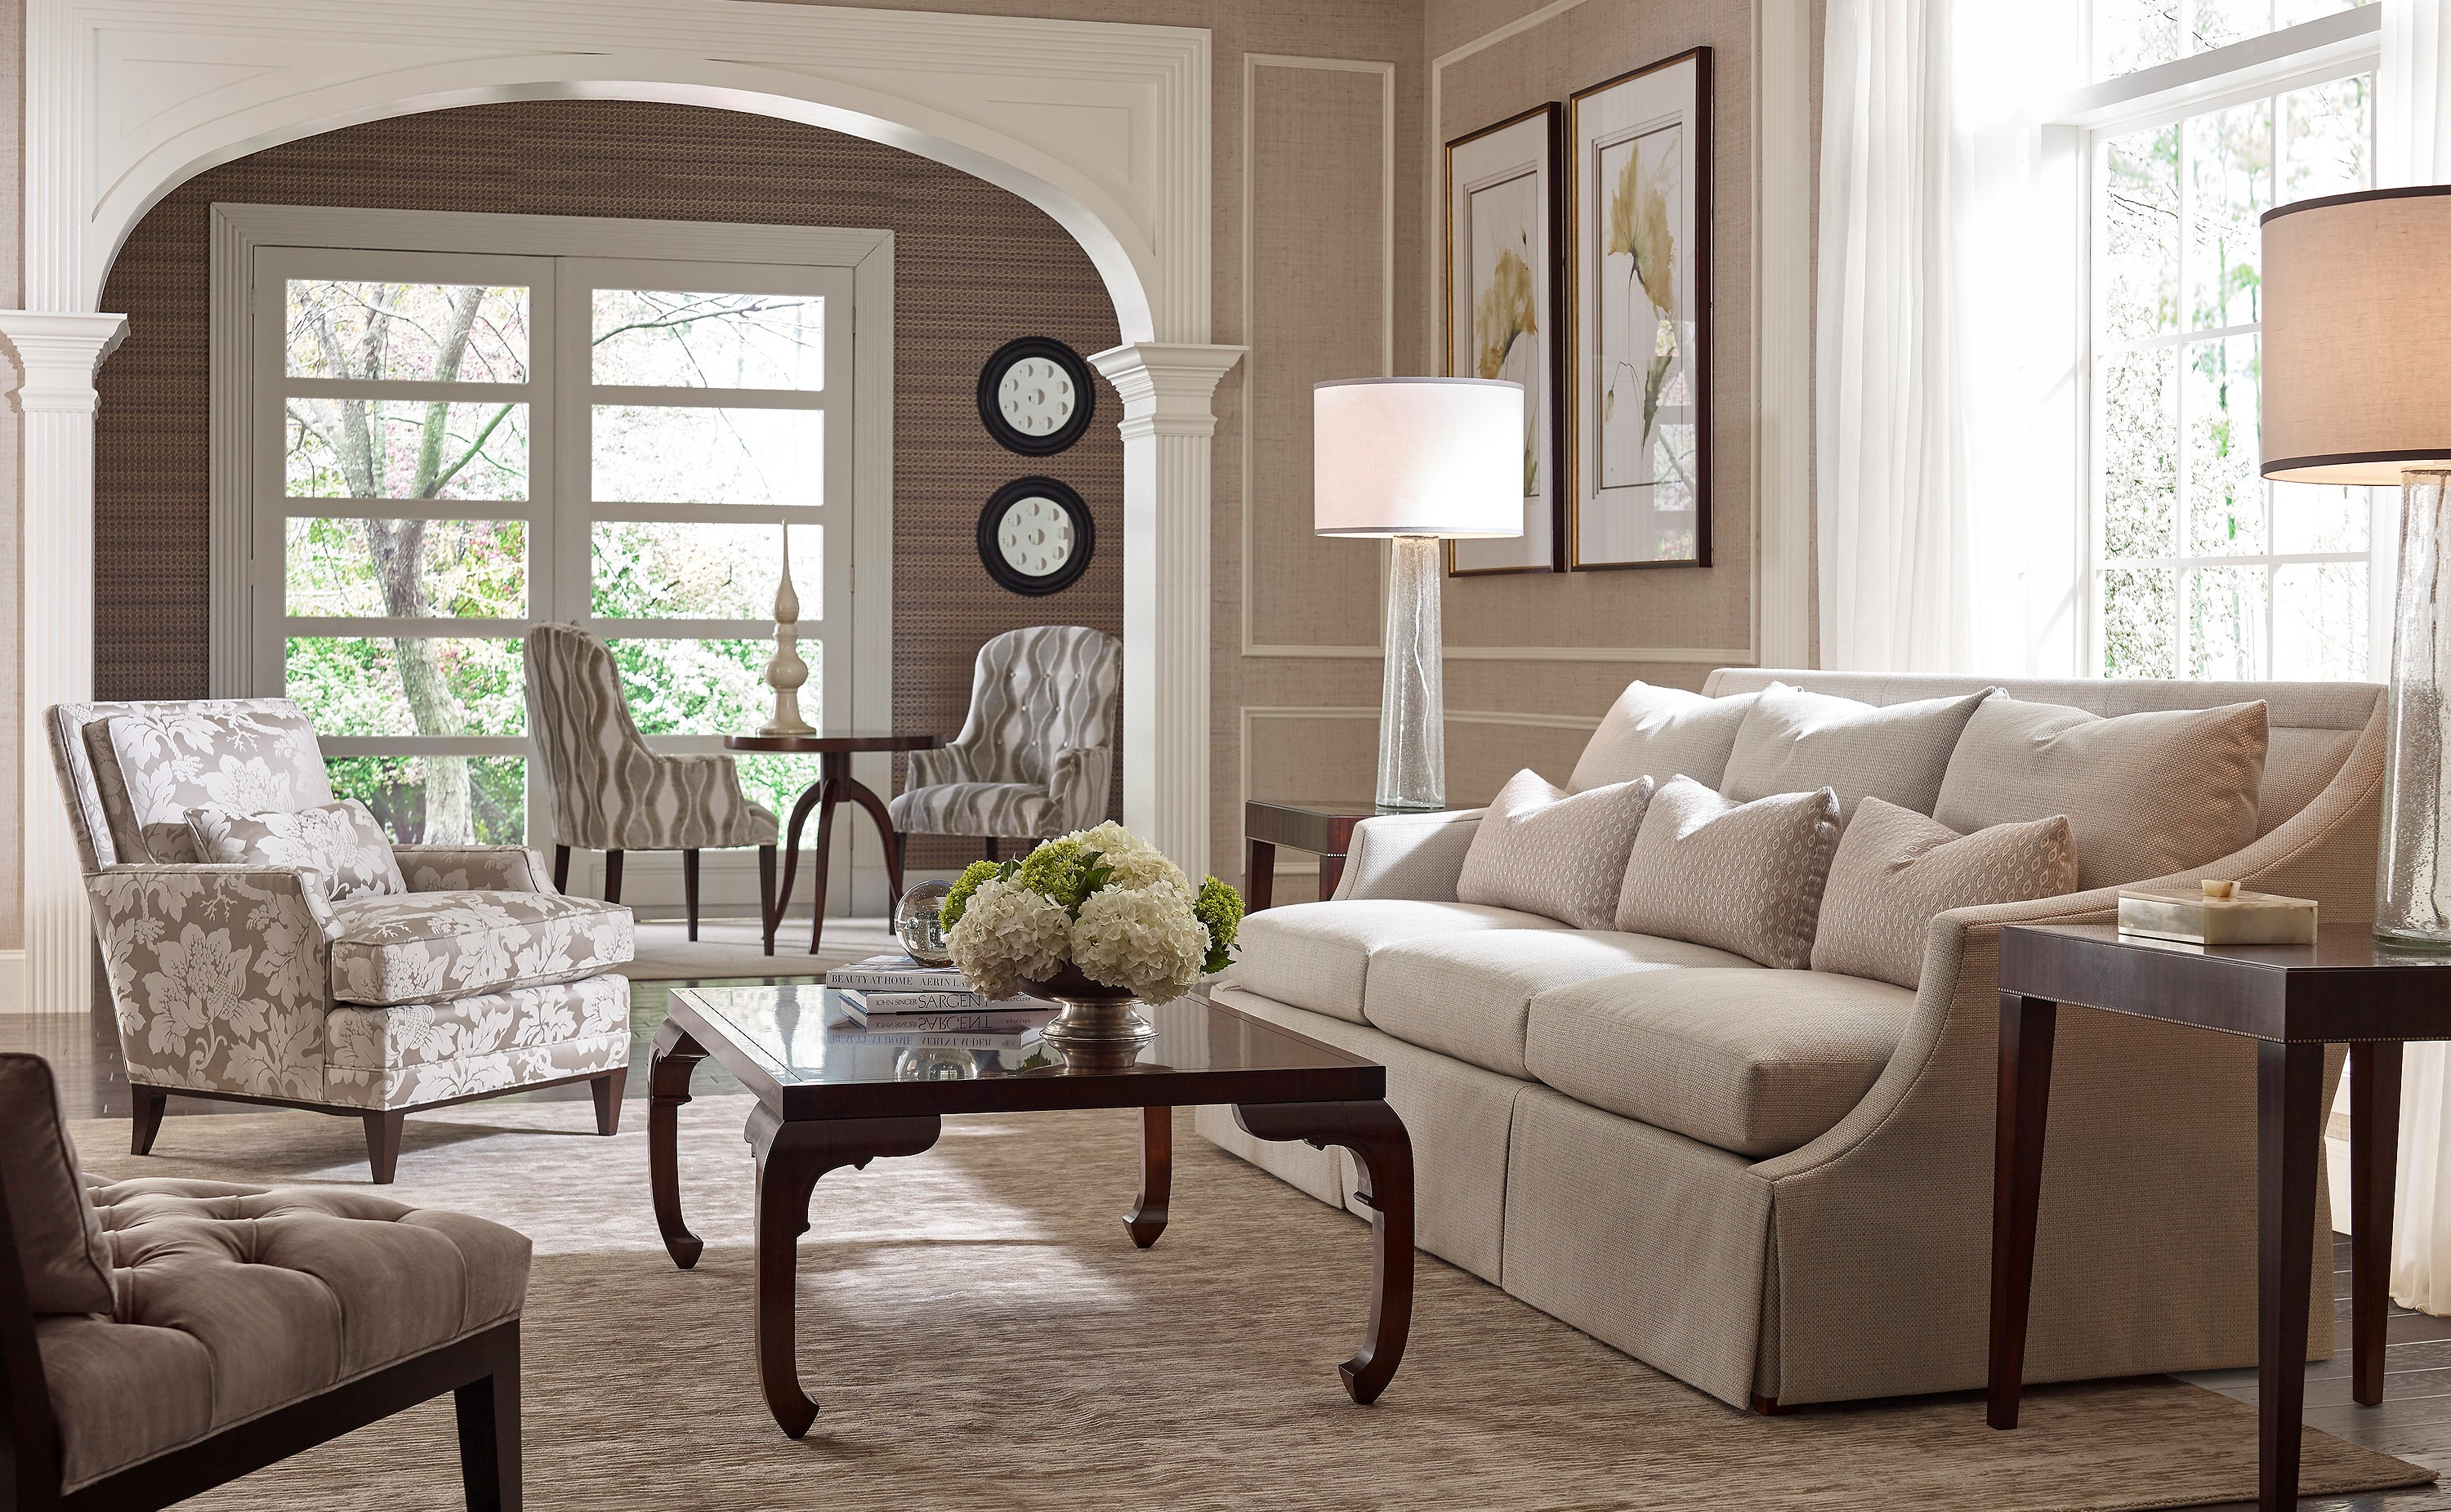 Interior Design 2020 Tips And Trends Prince William Living